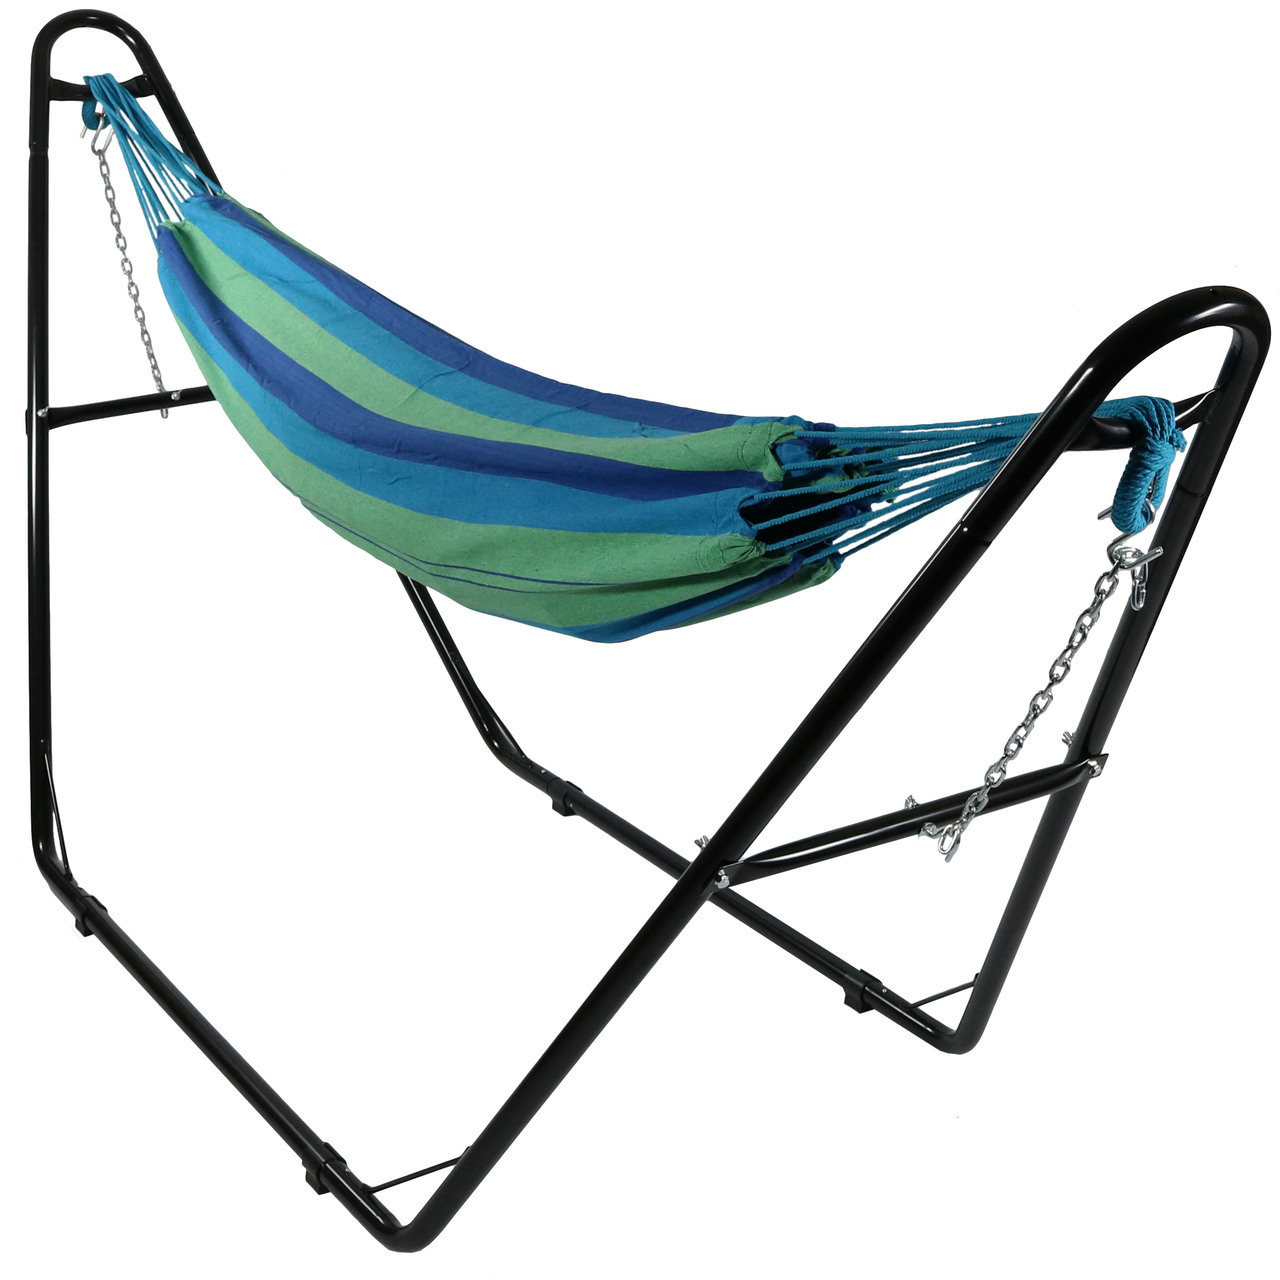 Sunnydaze Brazilian 2-Person Hammock with Universal Multi-Use Steel Stand, Indoor/Outdoor Use, 450 Pound Capacity, Calming Desert